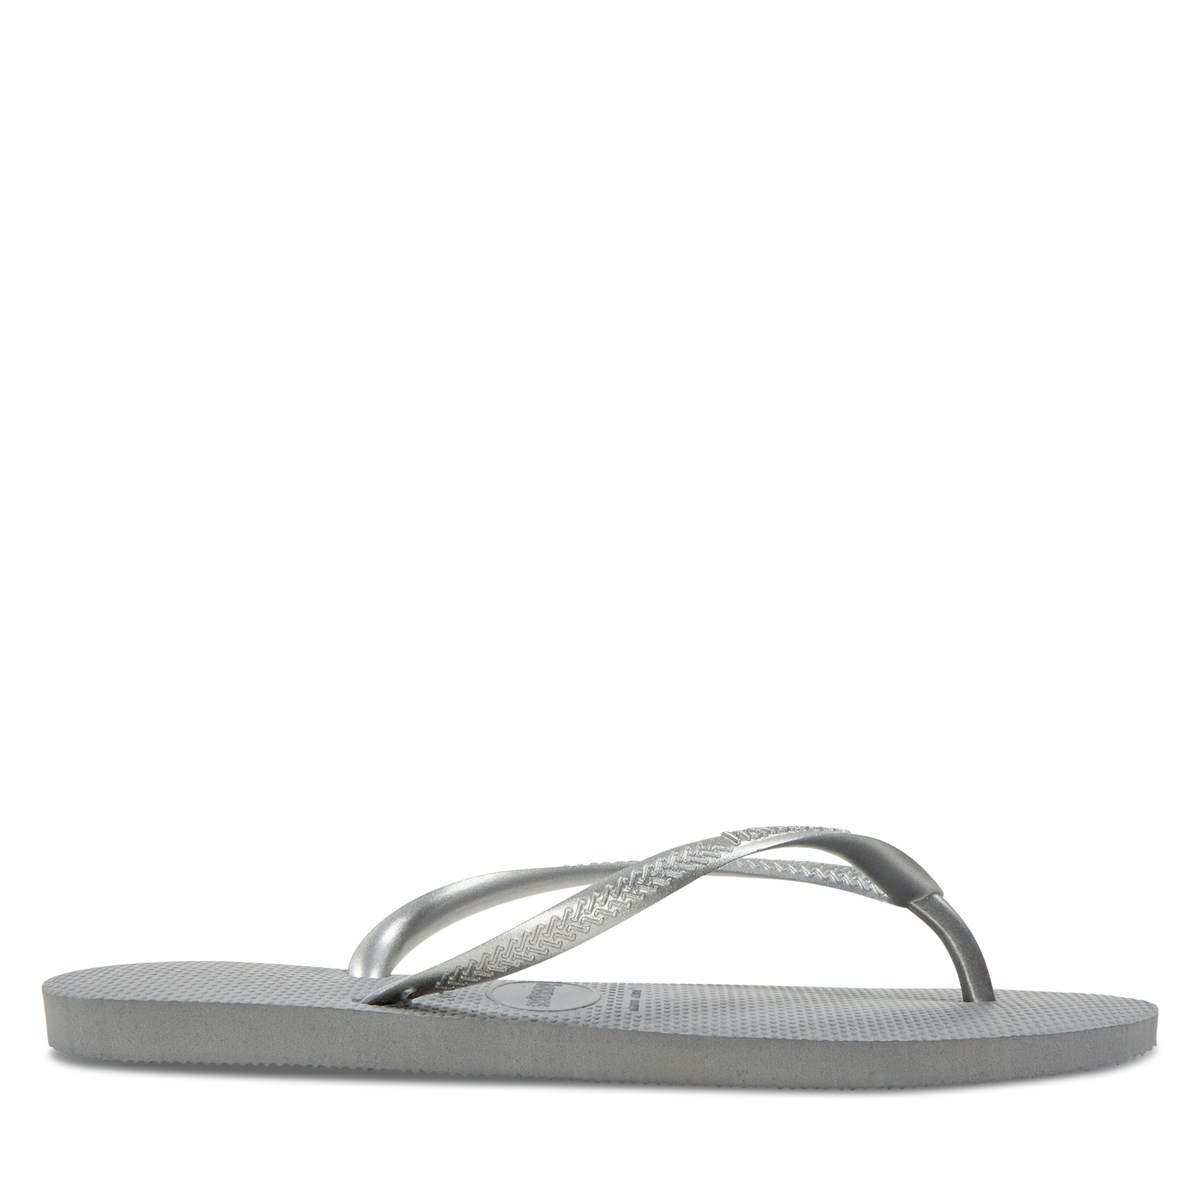 Women's Slim Flip Flops in Grey